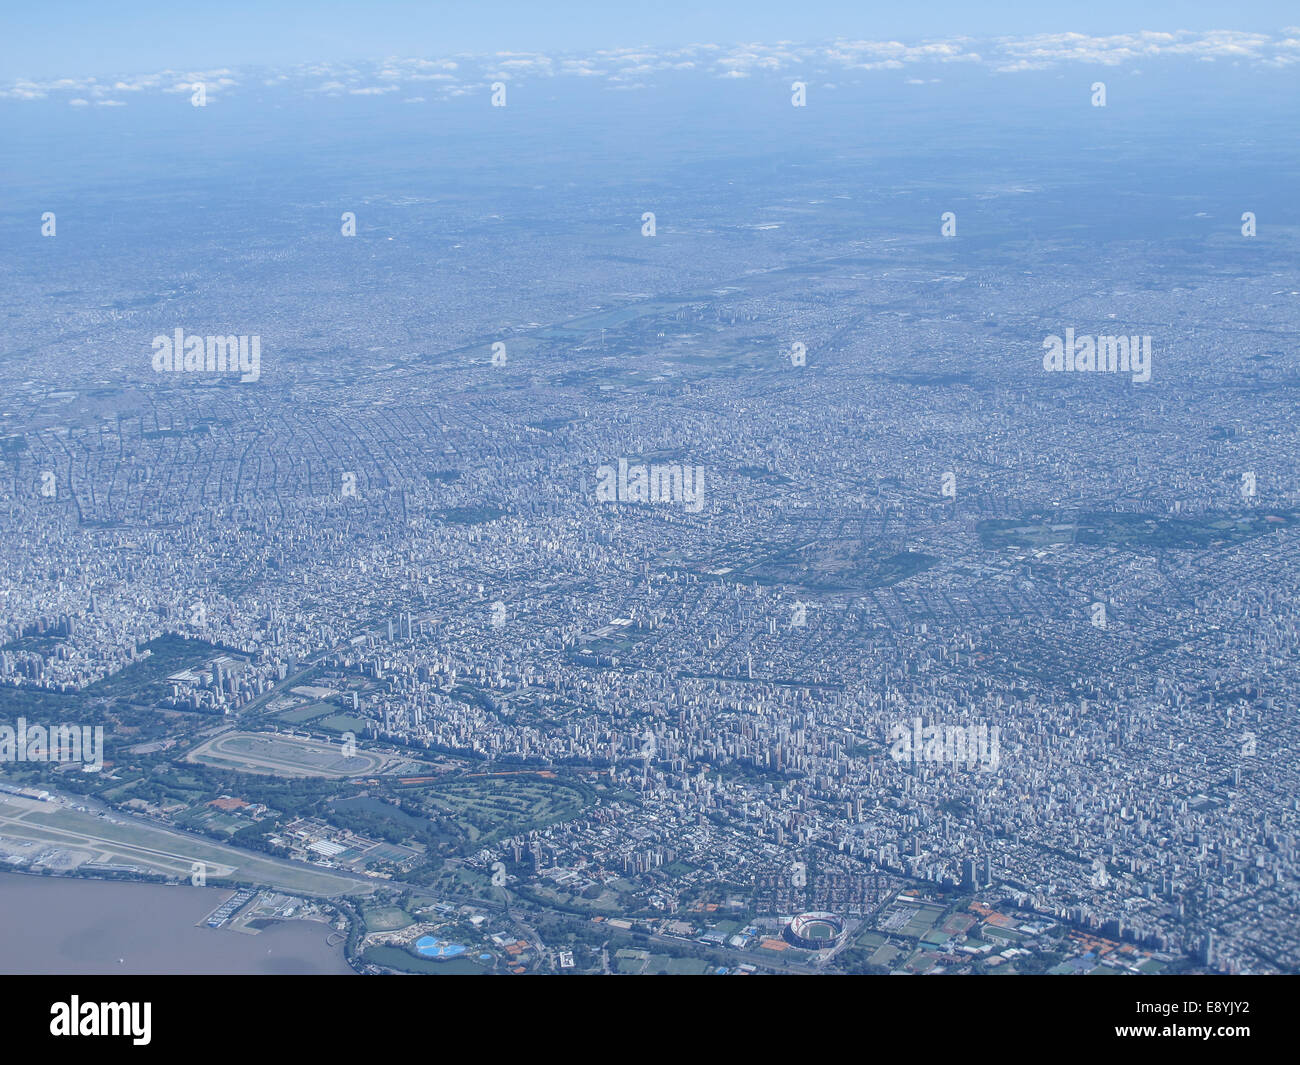 Buenos Aires, one of the largest megacities in the world, with pollution problems - Stock Image